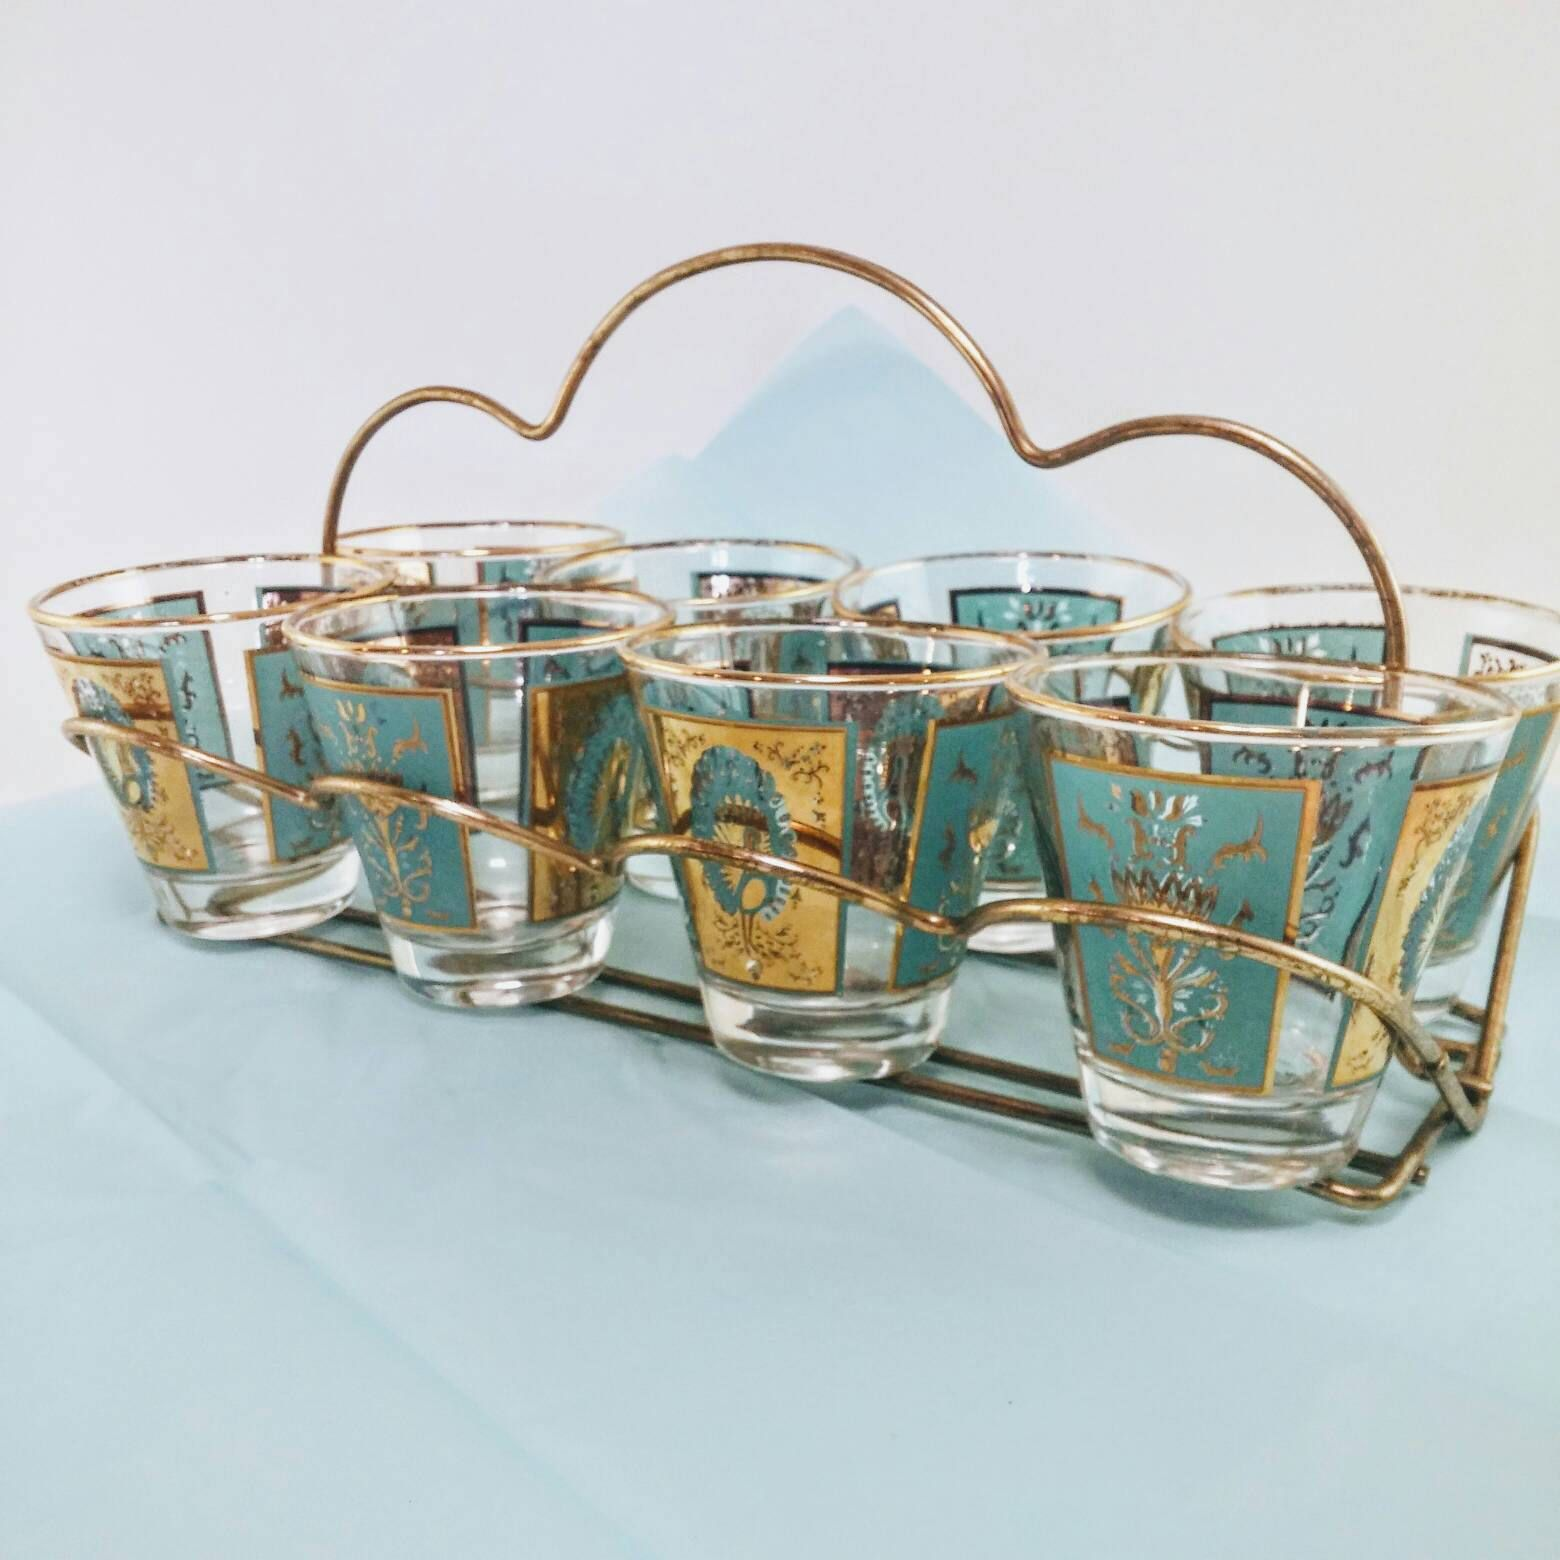 Vintage Peacock Rocks Glasses With Caddy | Turquoise And Gold Barware, Set  Of 8+